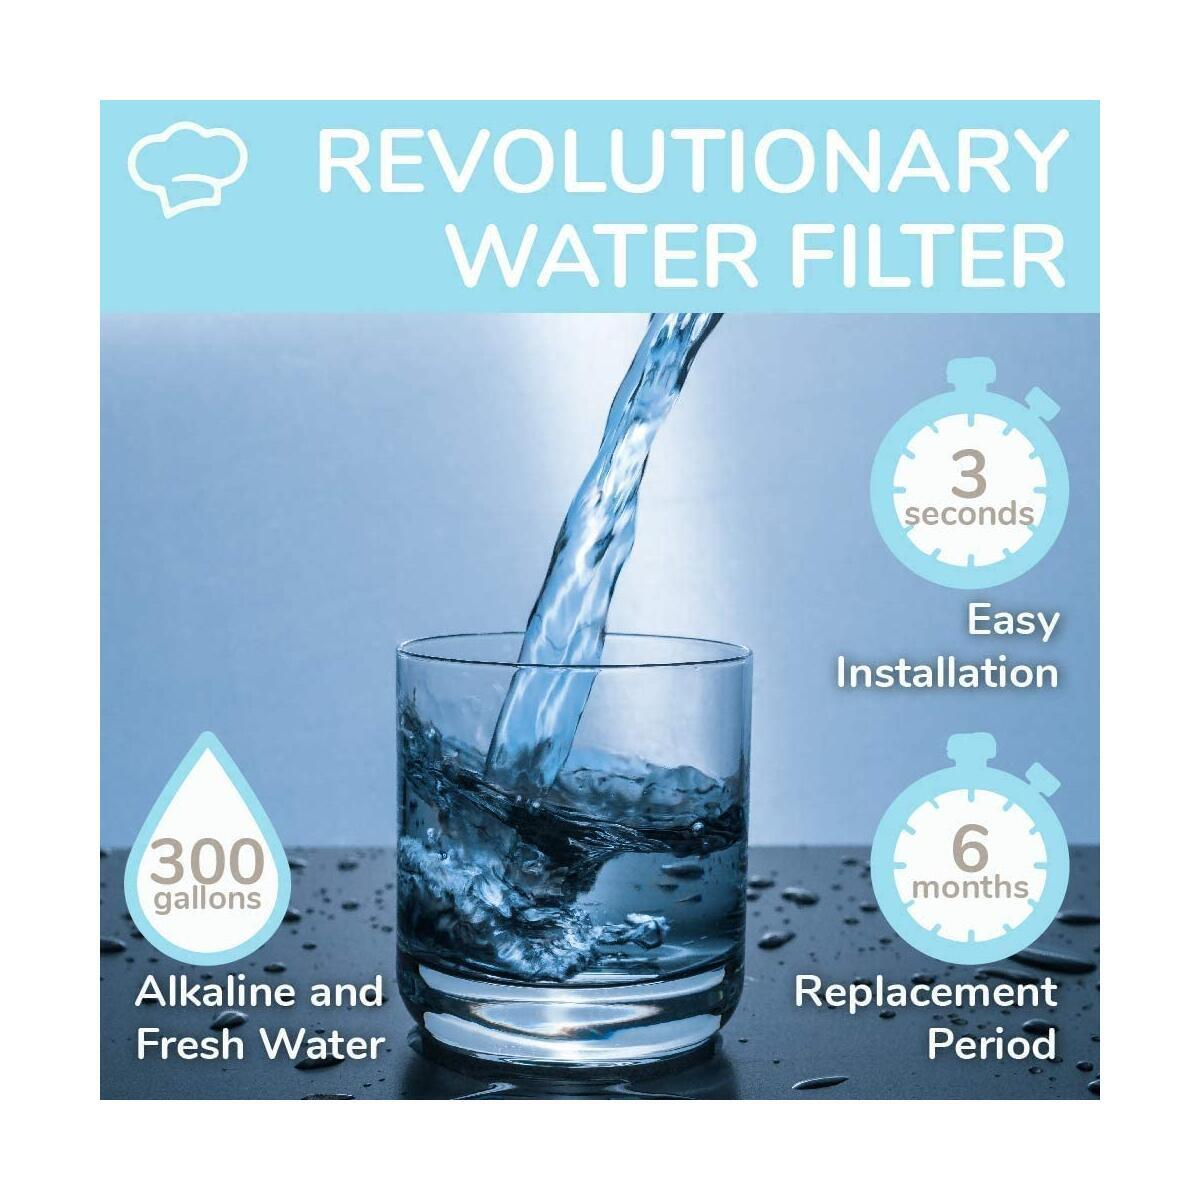 NEW WAMERY Alkaline Samsung Refrigerator Water Filter Replacement DA29-00003G Increase pH Level and Removes Contaminats Compatible with Samsung Fridge DA29-00003B RSG257AARS DA29-00003A